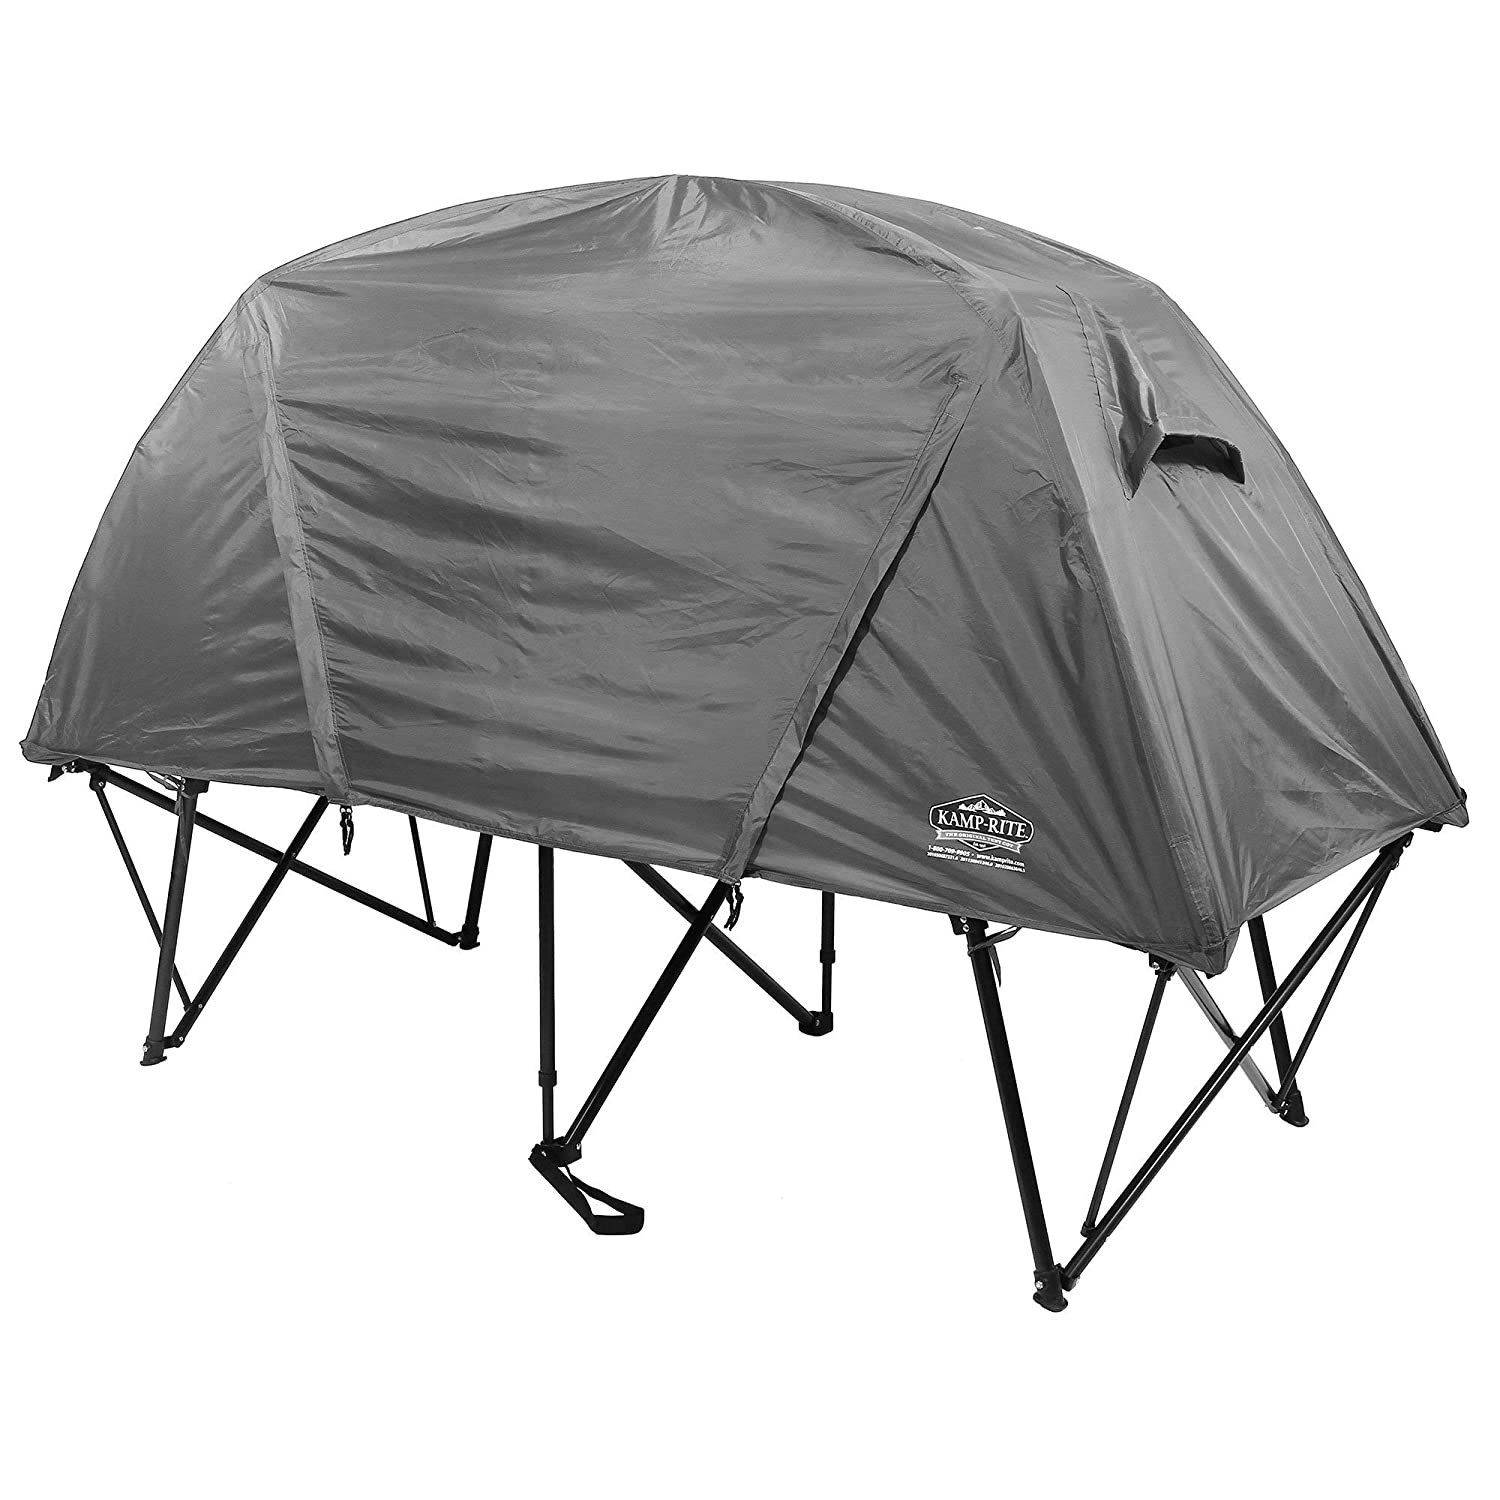 Kamp-Rite CTC XL Compact Collapsible Backpacking Tent Cot